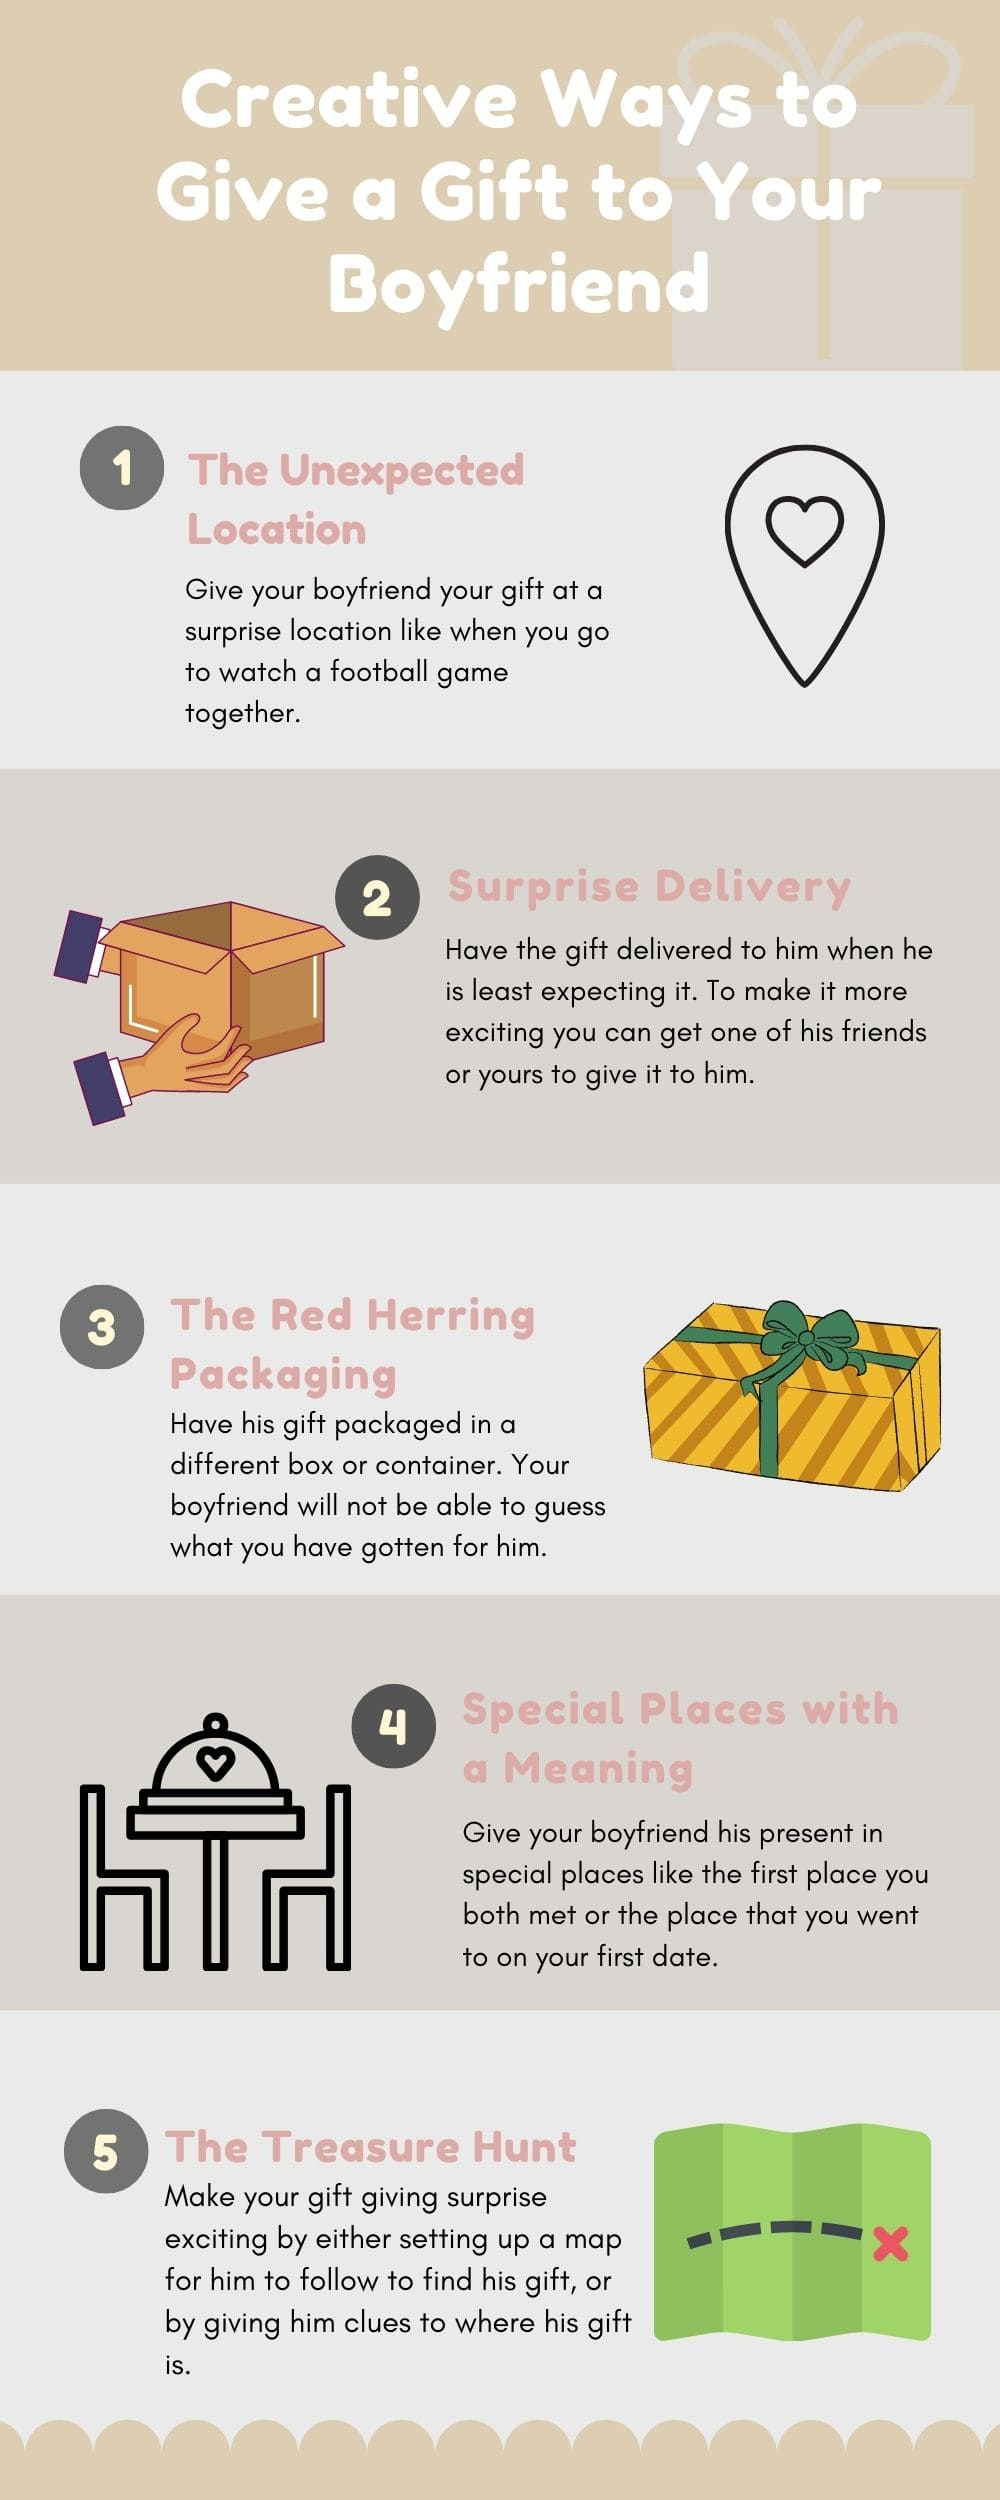 Creative ways to give a gift to your boyfriend